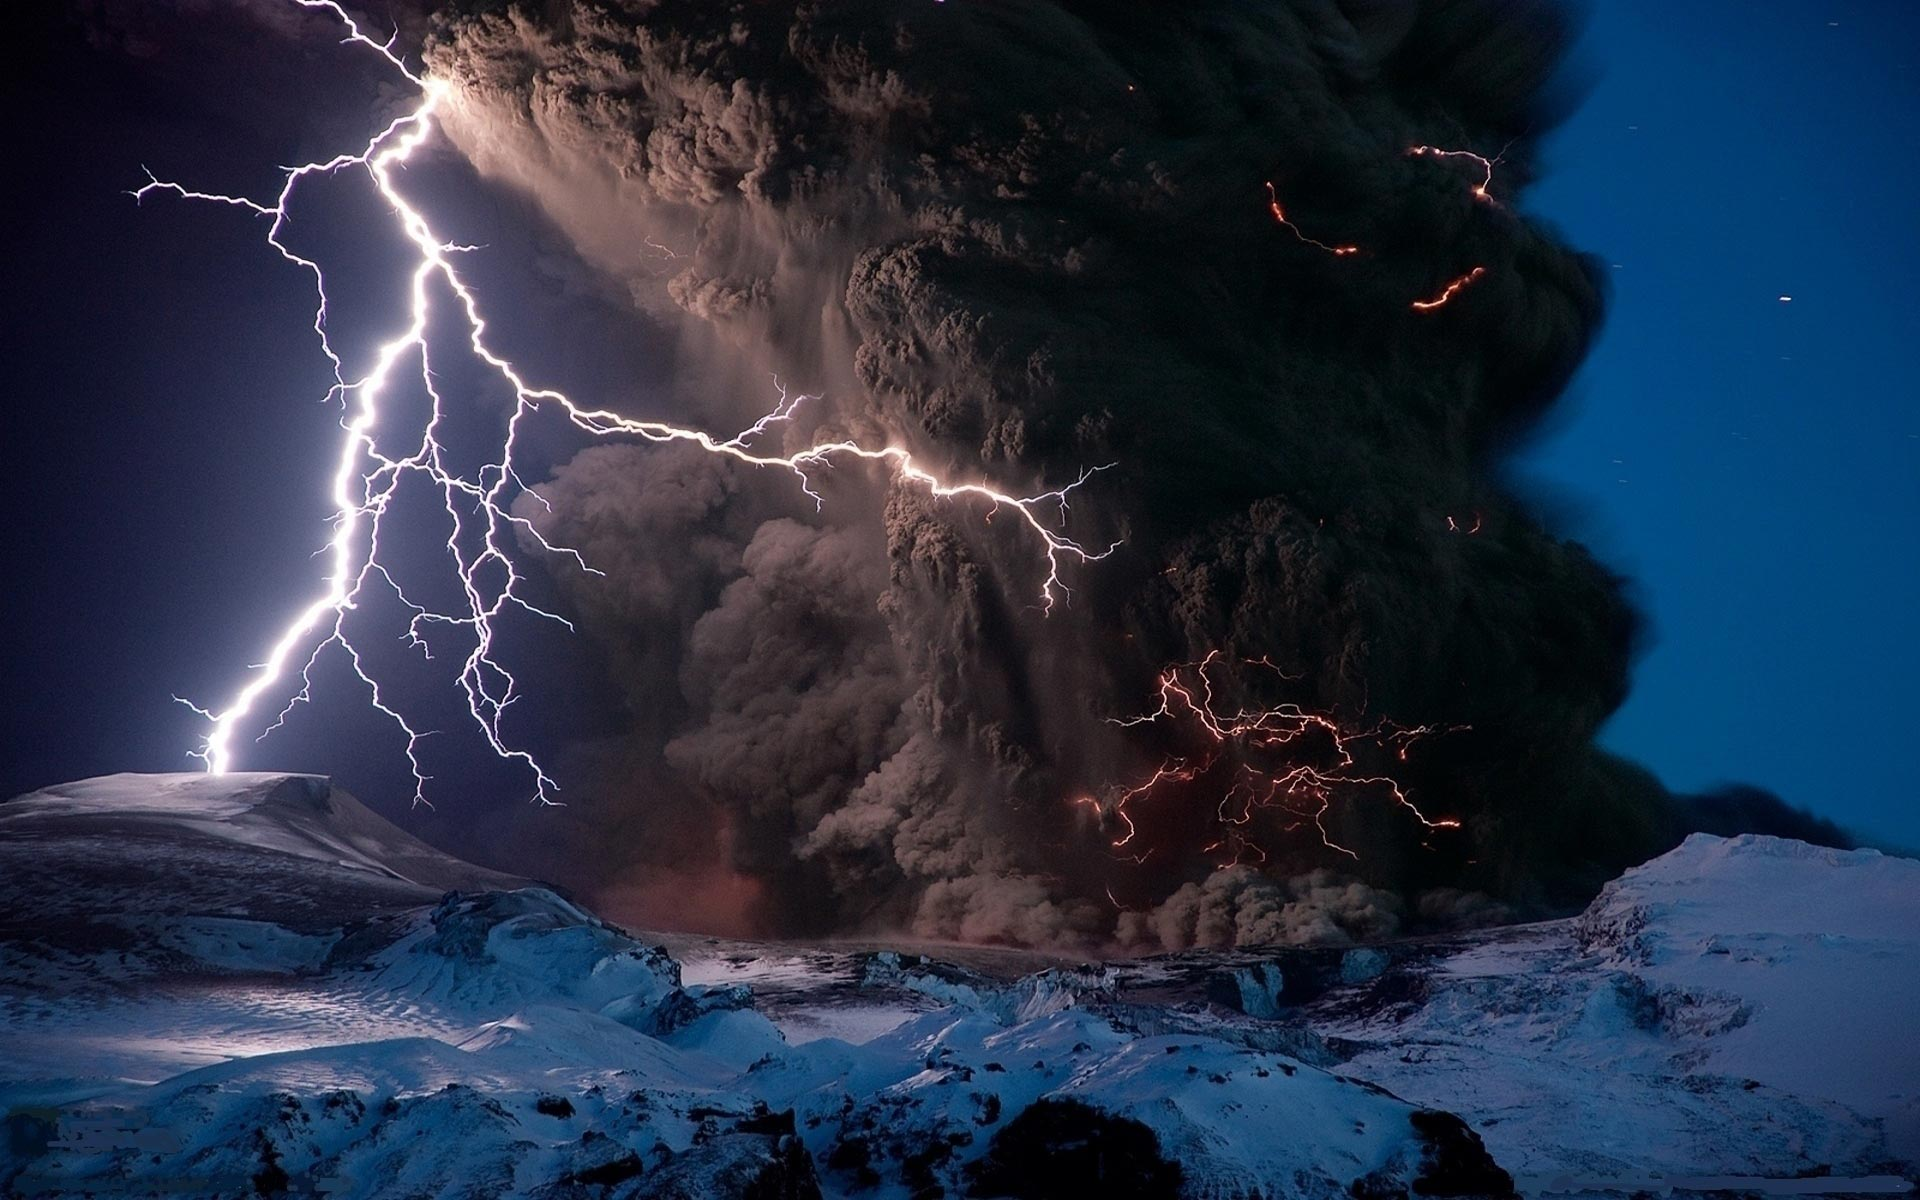 Lightning Wallpaper wallpaper Tornado with Lightning Wallpaper hd 1920x1200